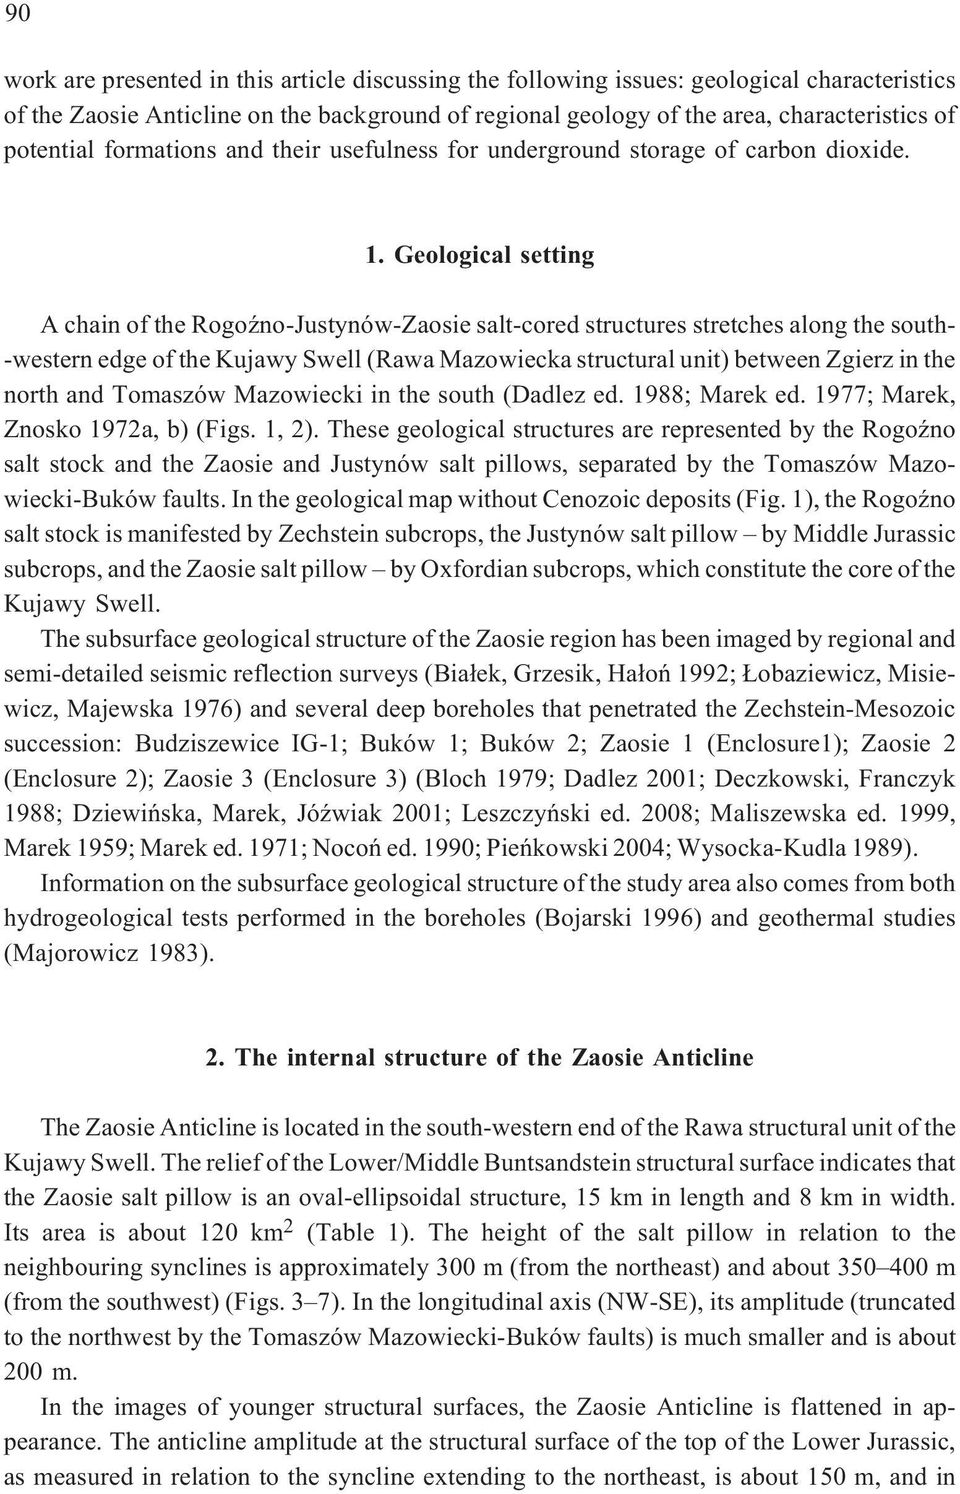 Gelgical setting A chain f the RgŸn-Justynów-Zasie salt-cred structures stretches alng the suth- -western edge f the Kujawy Swell (Rawa Mazwiecka structural unit) between Zgierz in the nrth and